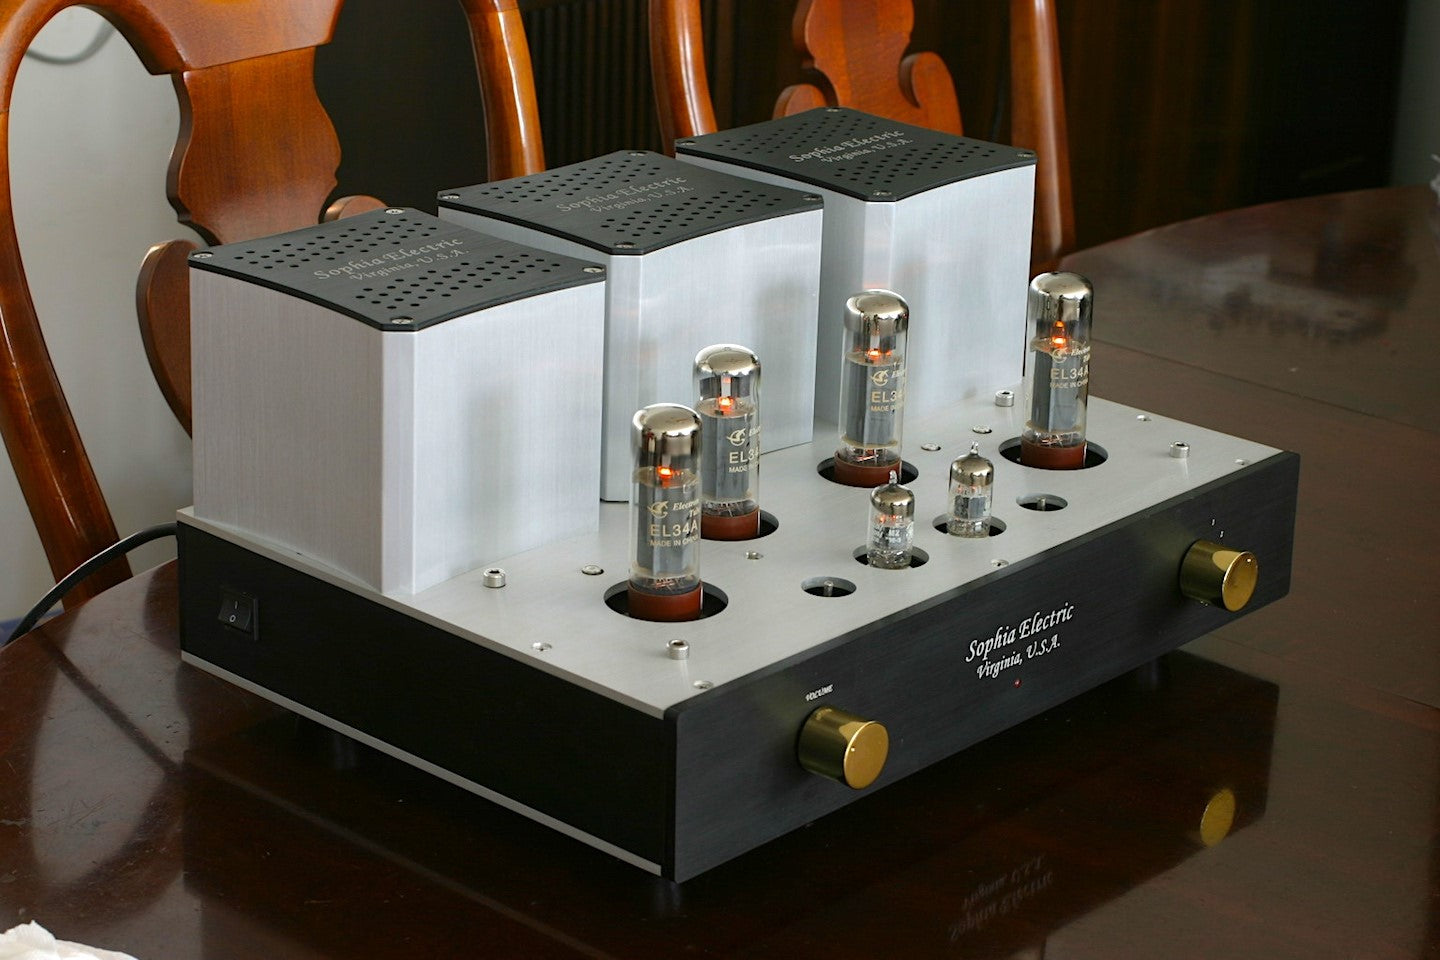 Sophia Electric Magic 126S Dual-Mono Stereo Integrated Amplifier